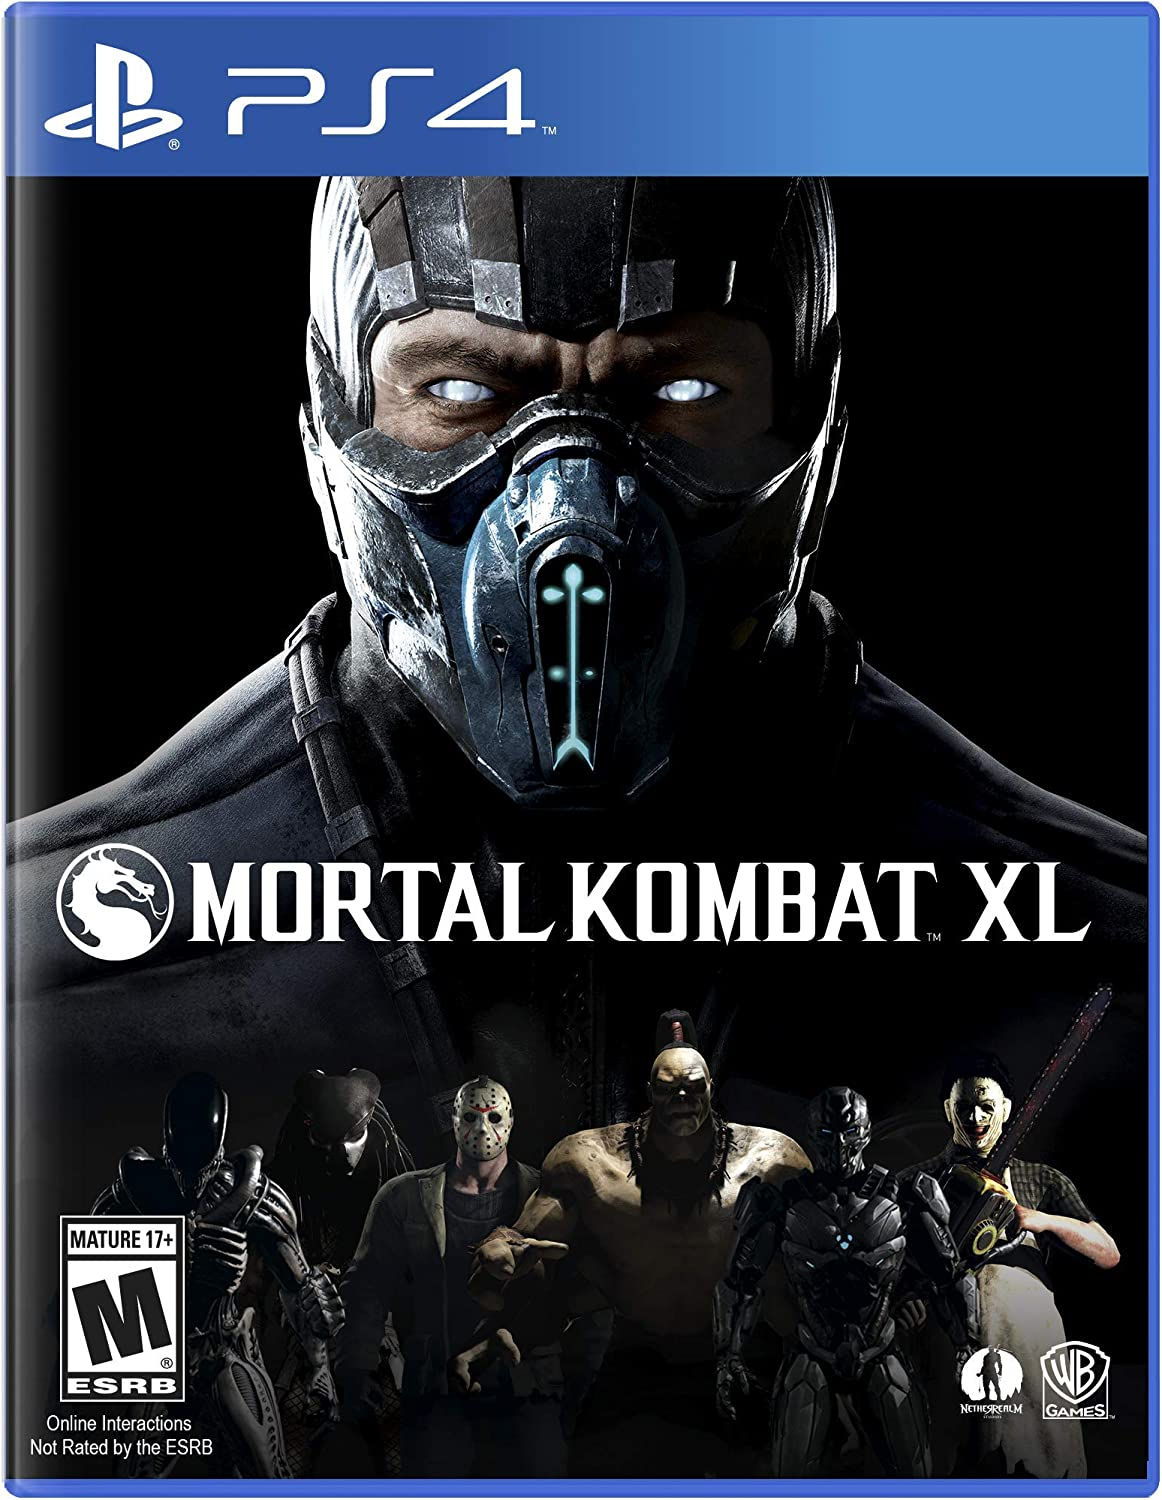 Amazon Com Mortal Kombat Xl Playstation 4 Whv Games Video Games